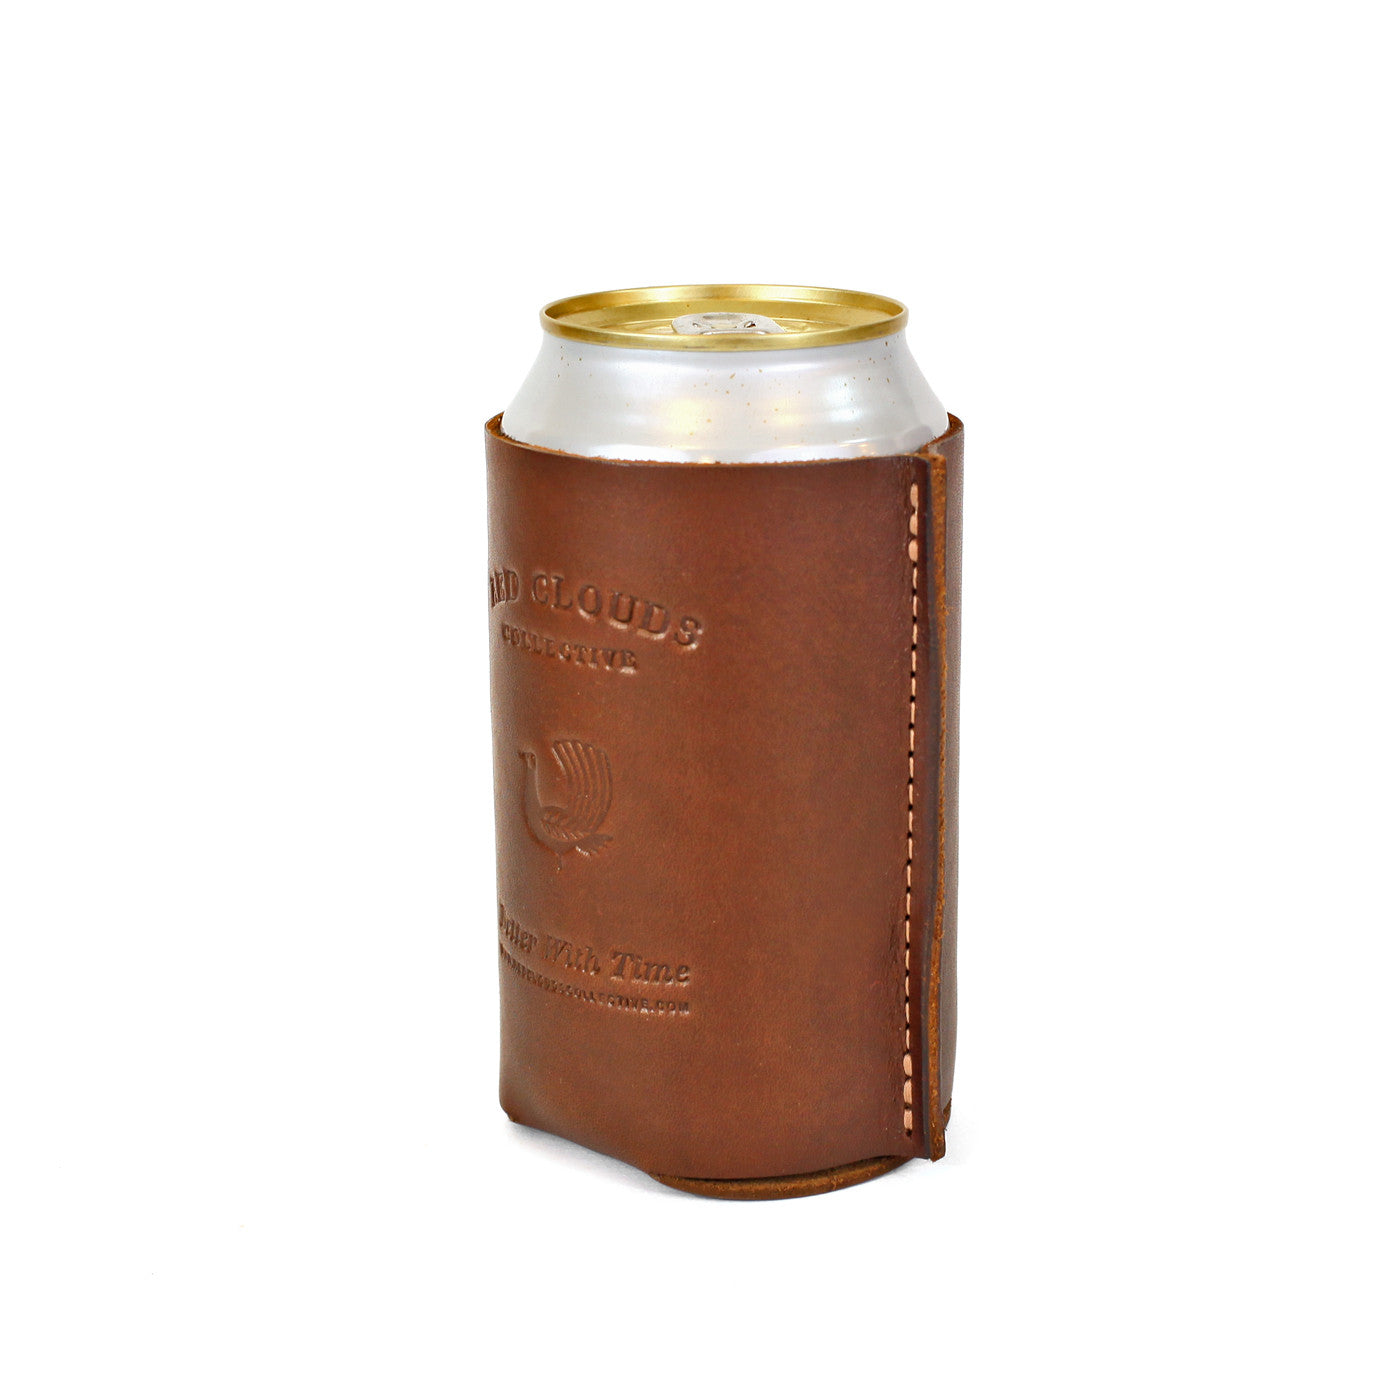 leather koozie, leather can, leather coozie, coaster, leather beer holder, leather bottle koozie, made in usa, tan leather